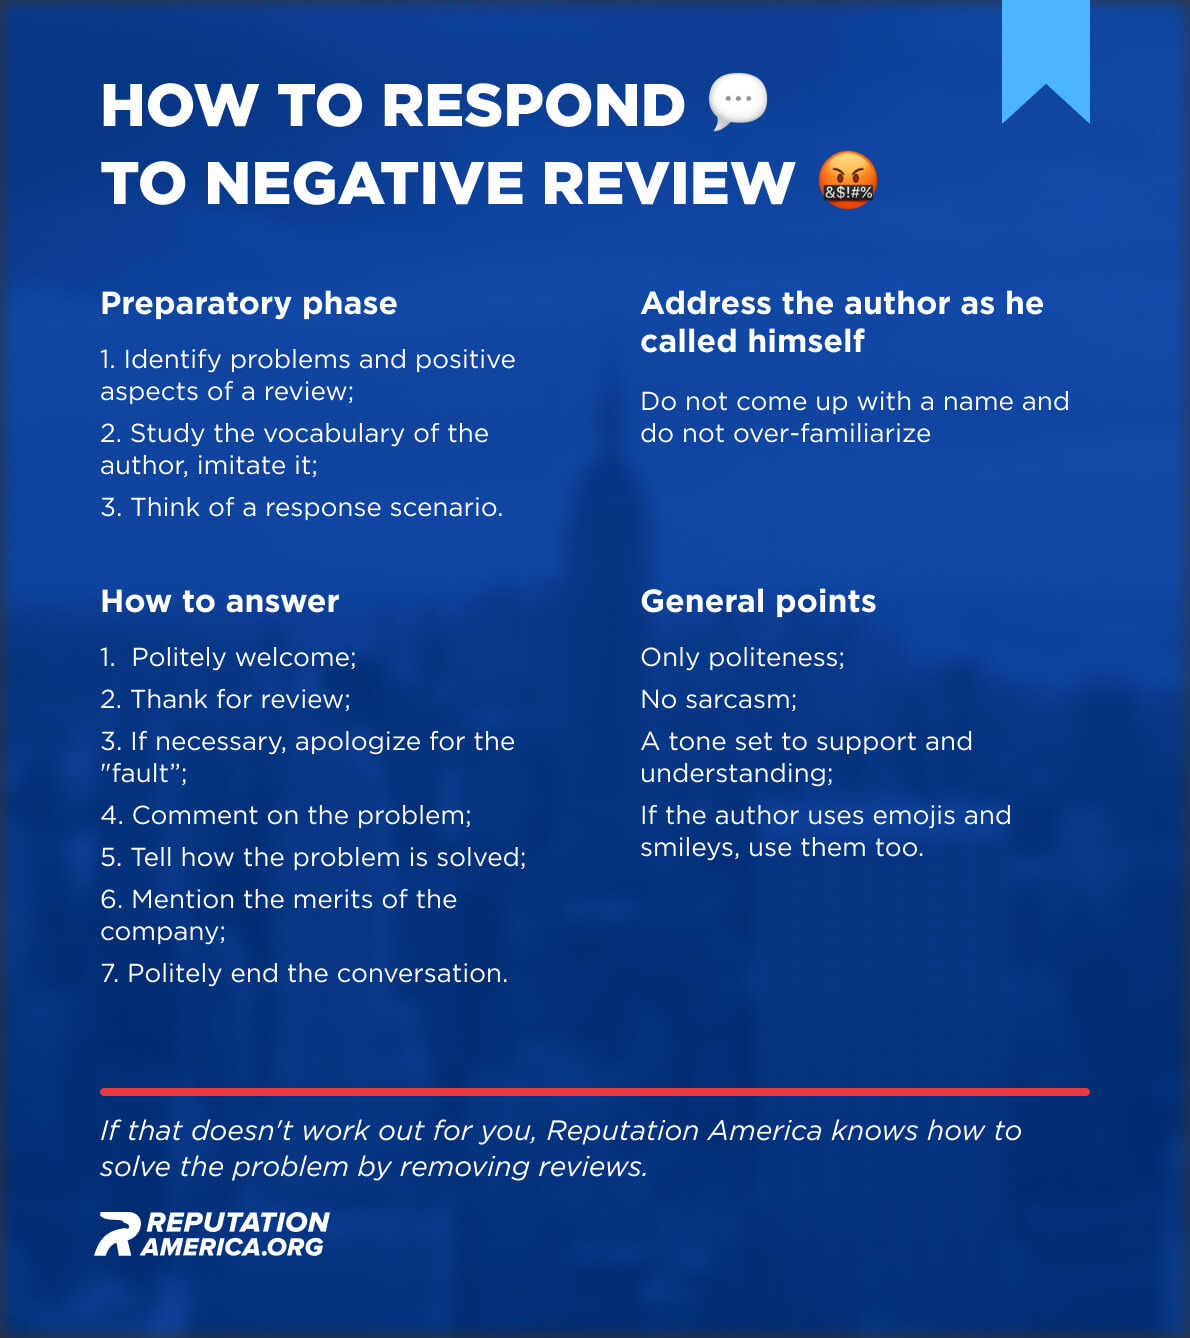 How to respond to negative review